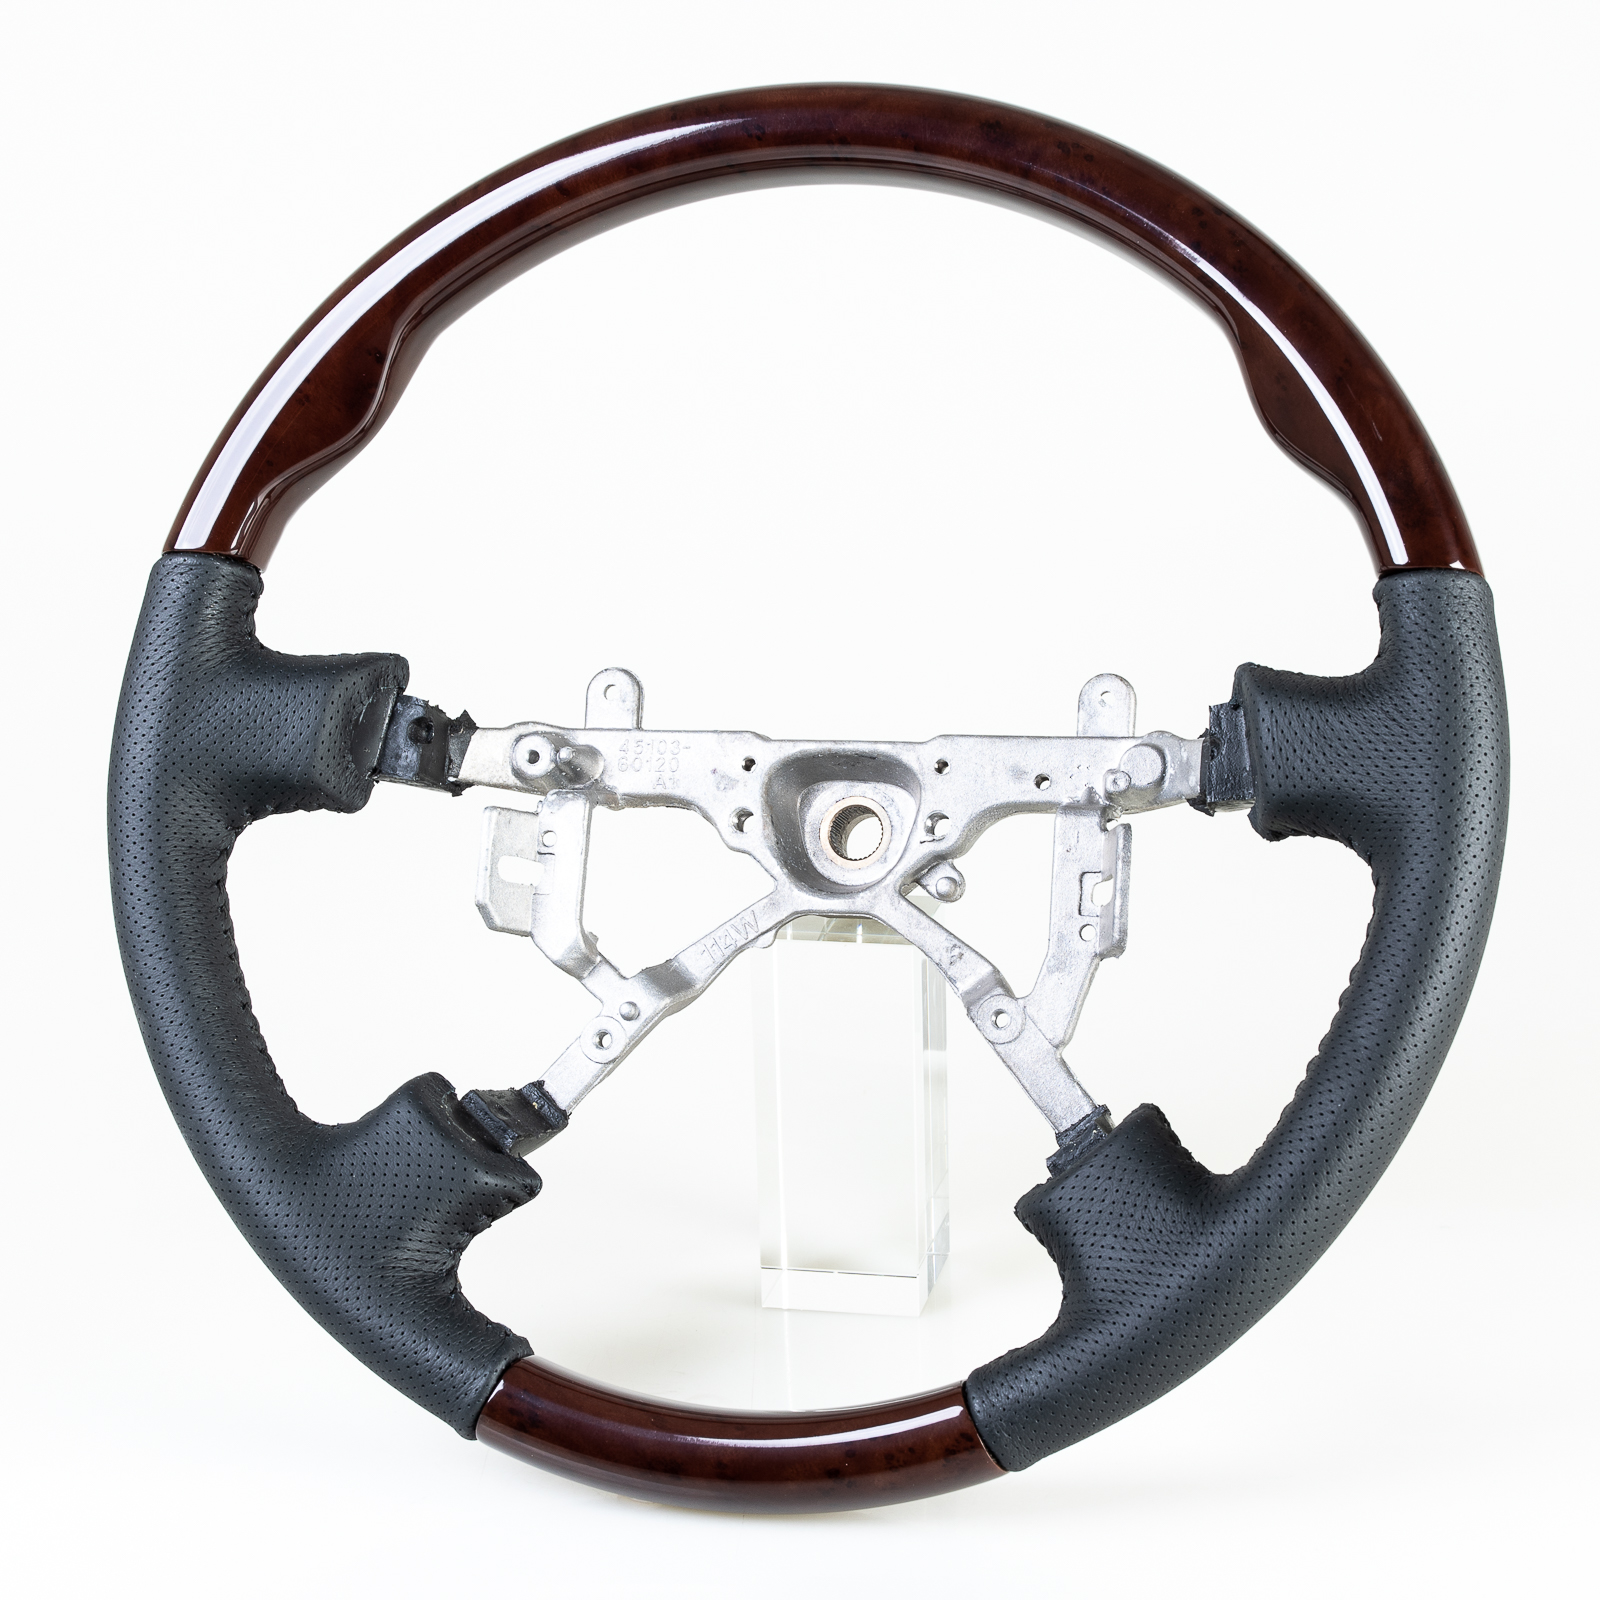 Replacement Steering Wheel Classic Wood Grain Leather Grip For Toyota Land Cruiser Lexus LX470